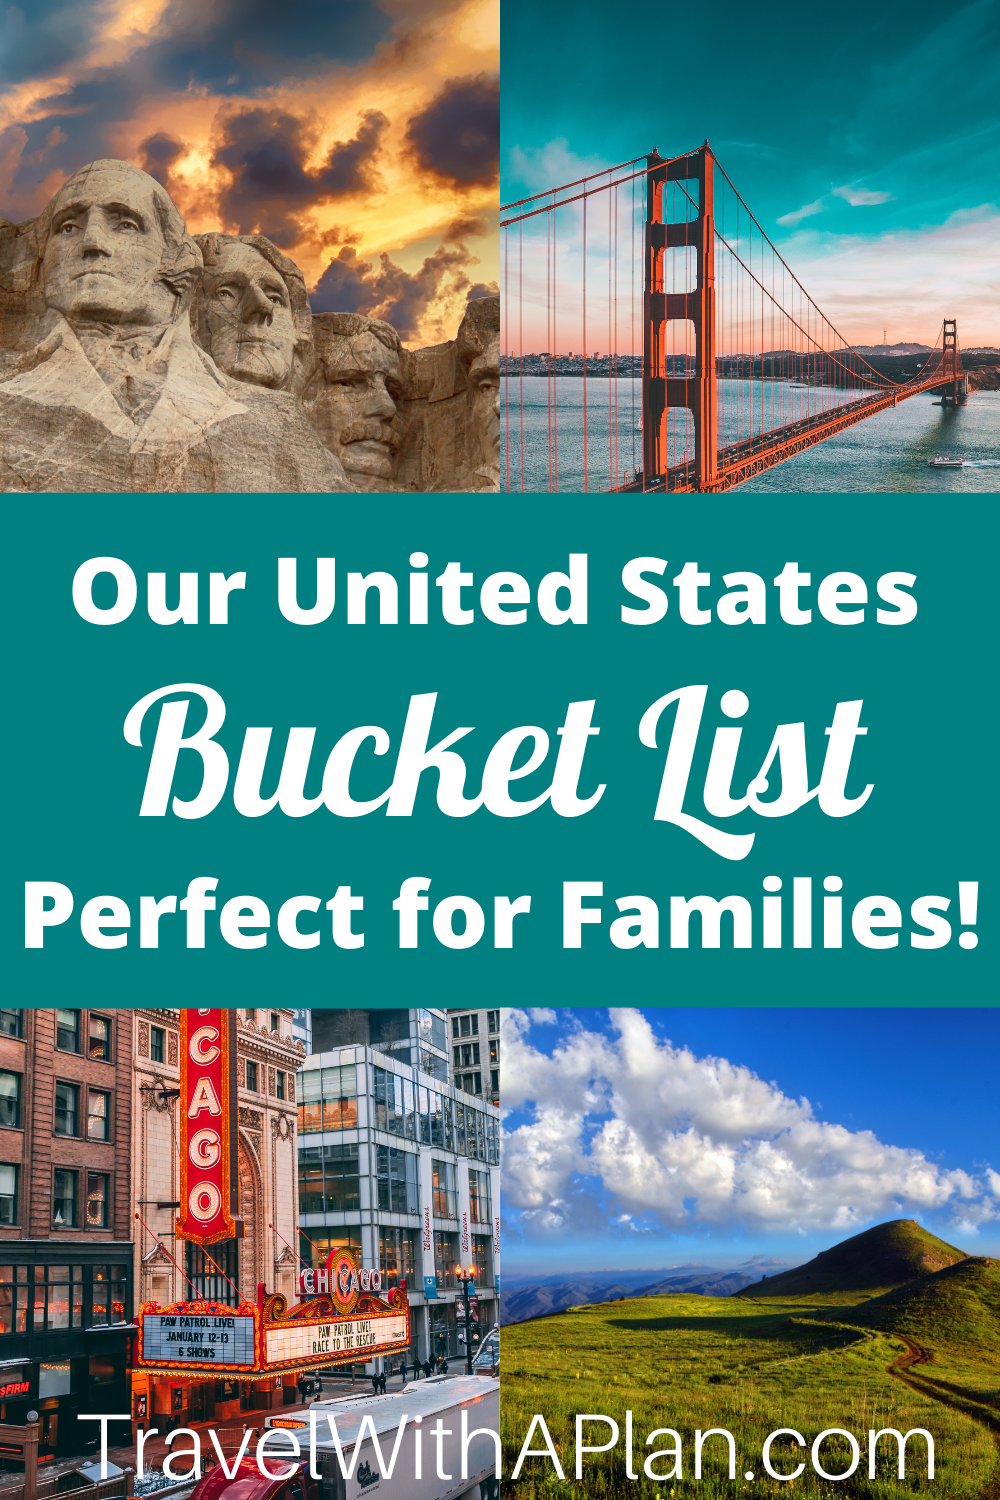 A fun and detailed United States bucket list from Top U.S. Family Blog, Travel With A Plan.